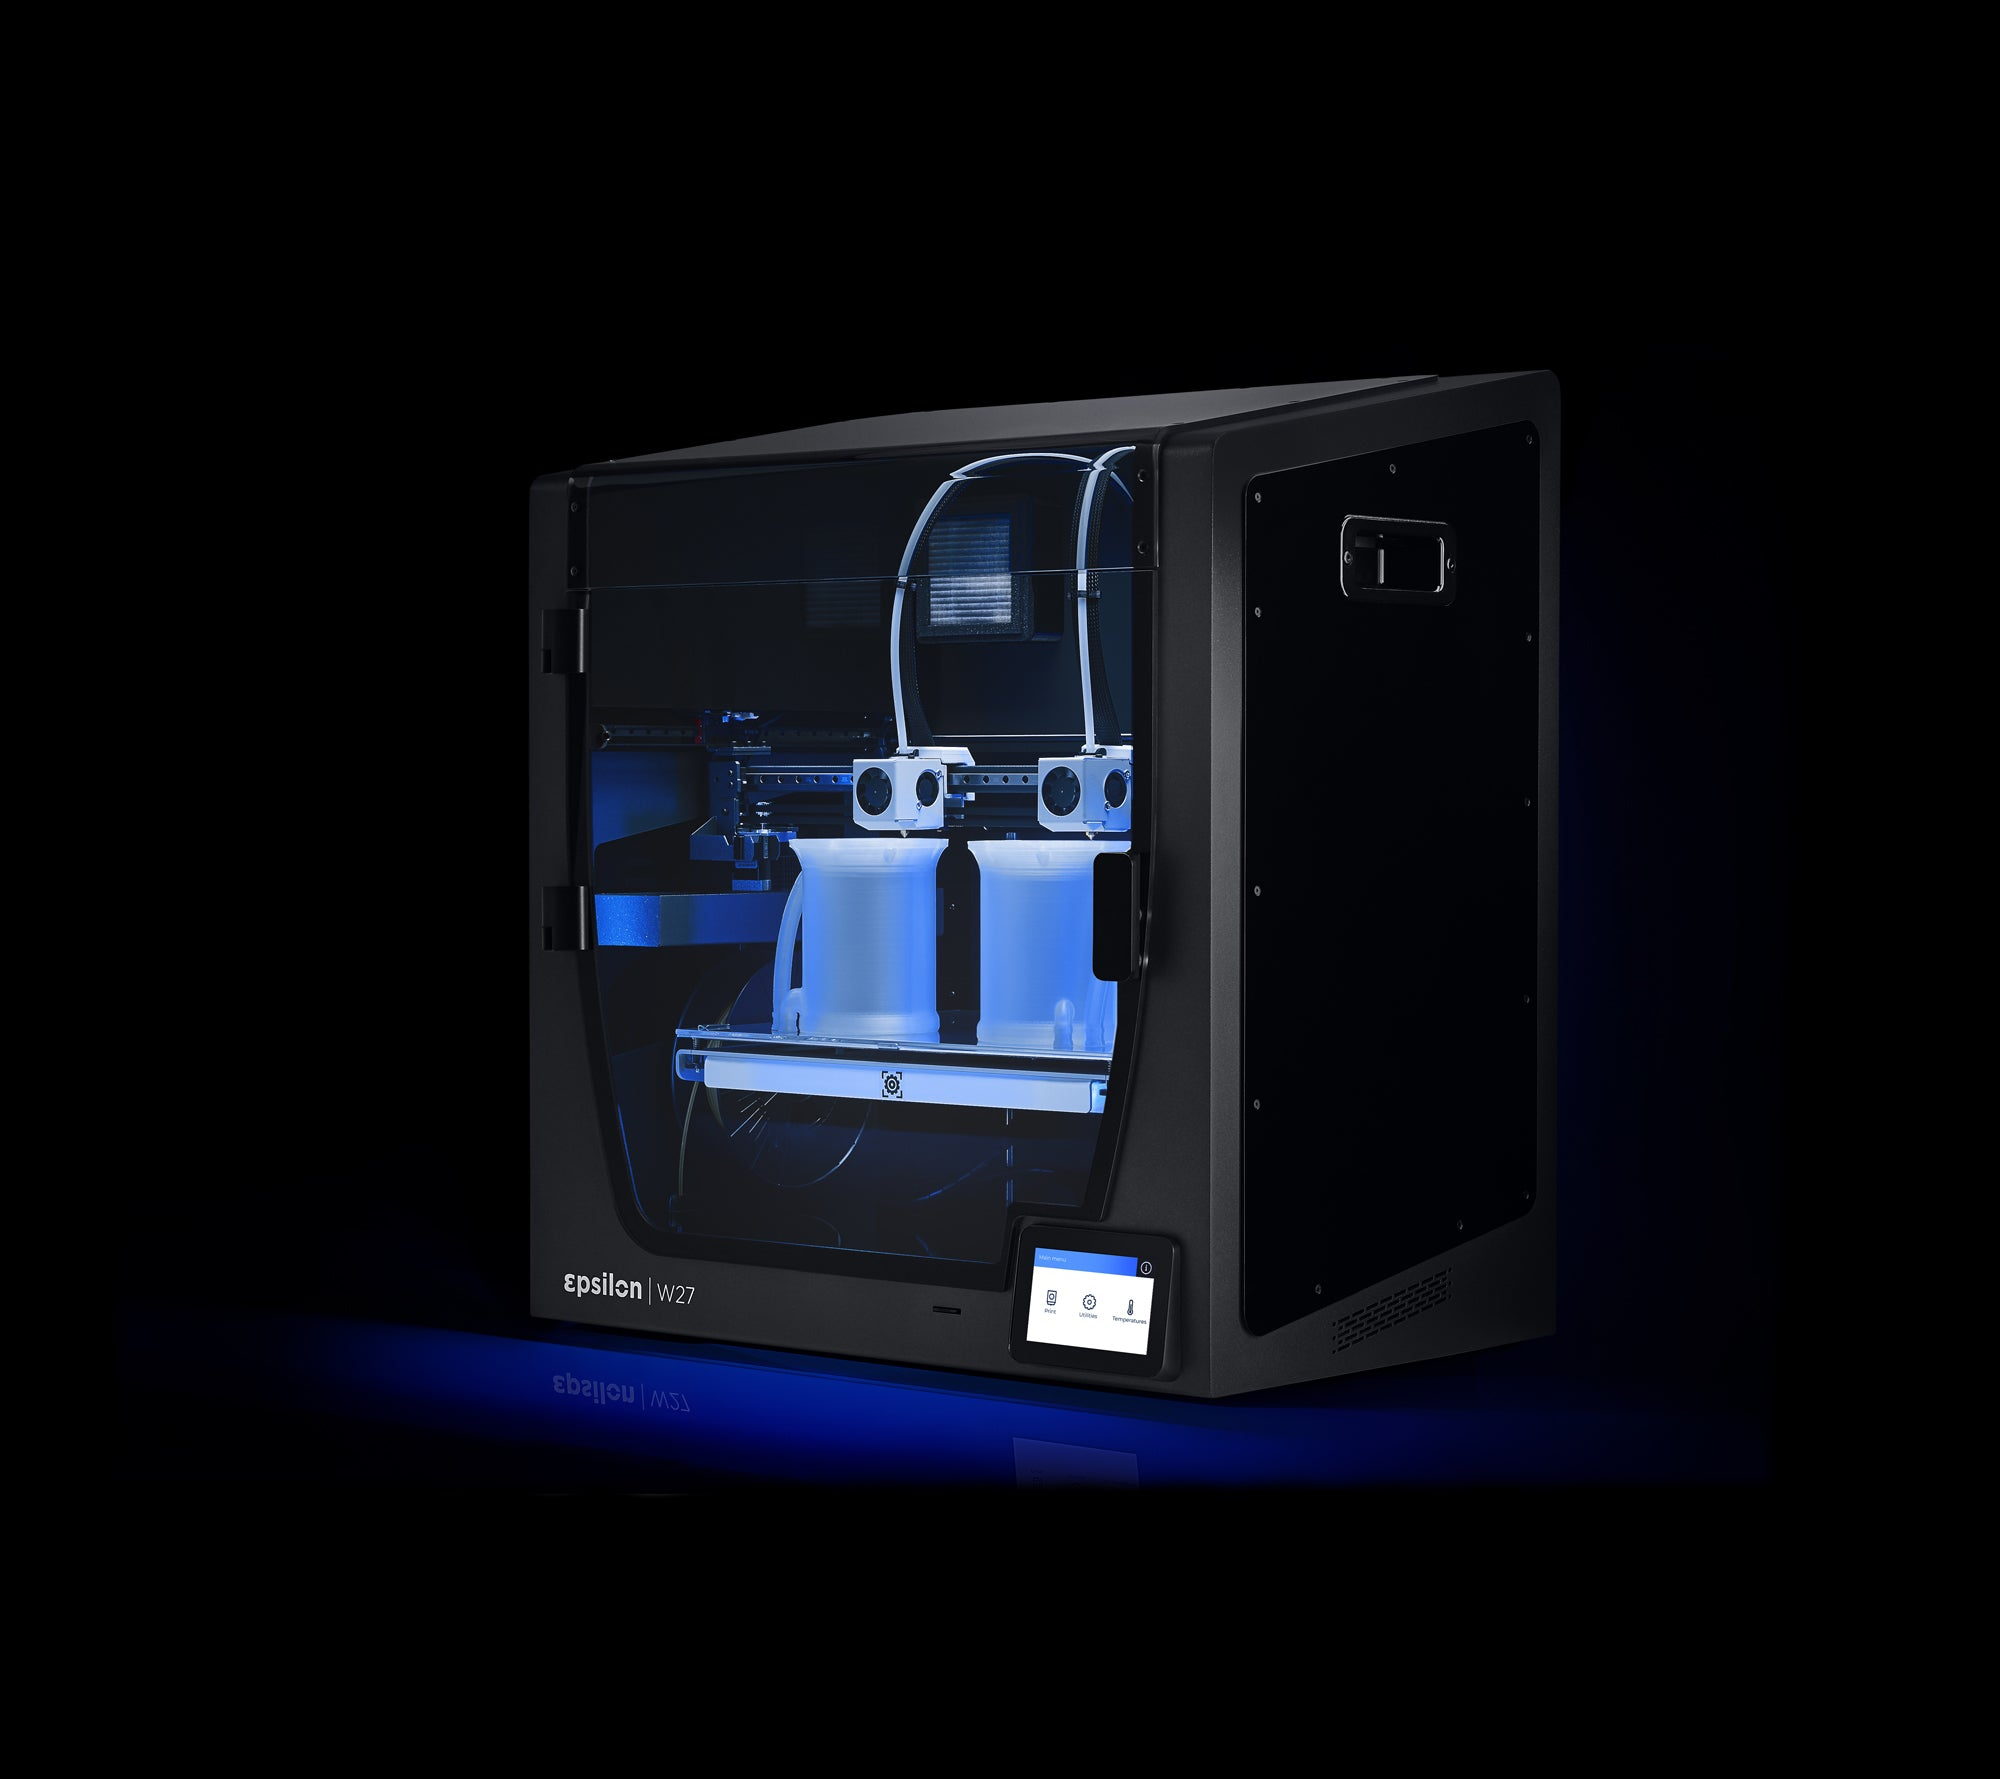 BCN3D Epsilon W27 3D Printer